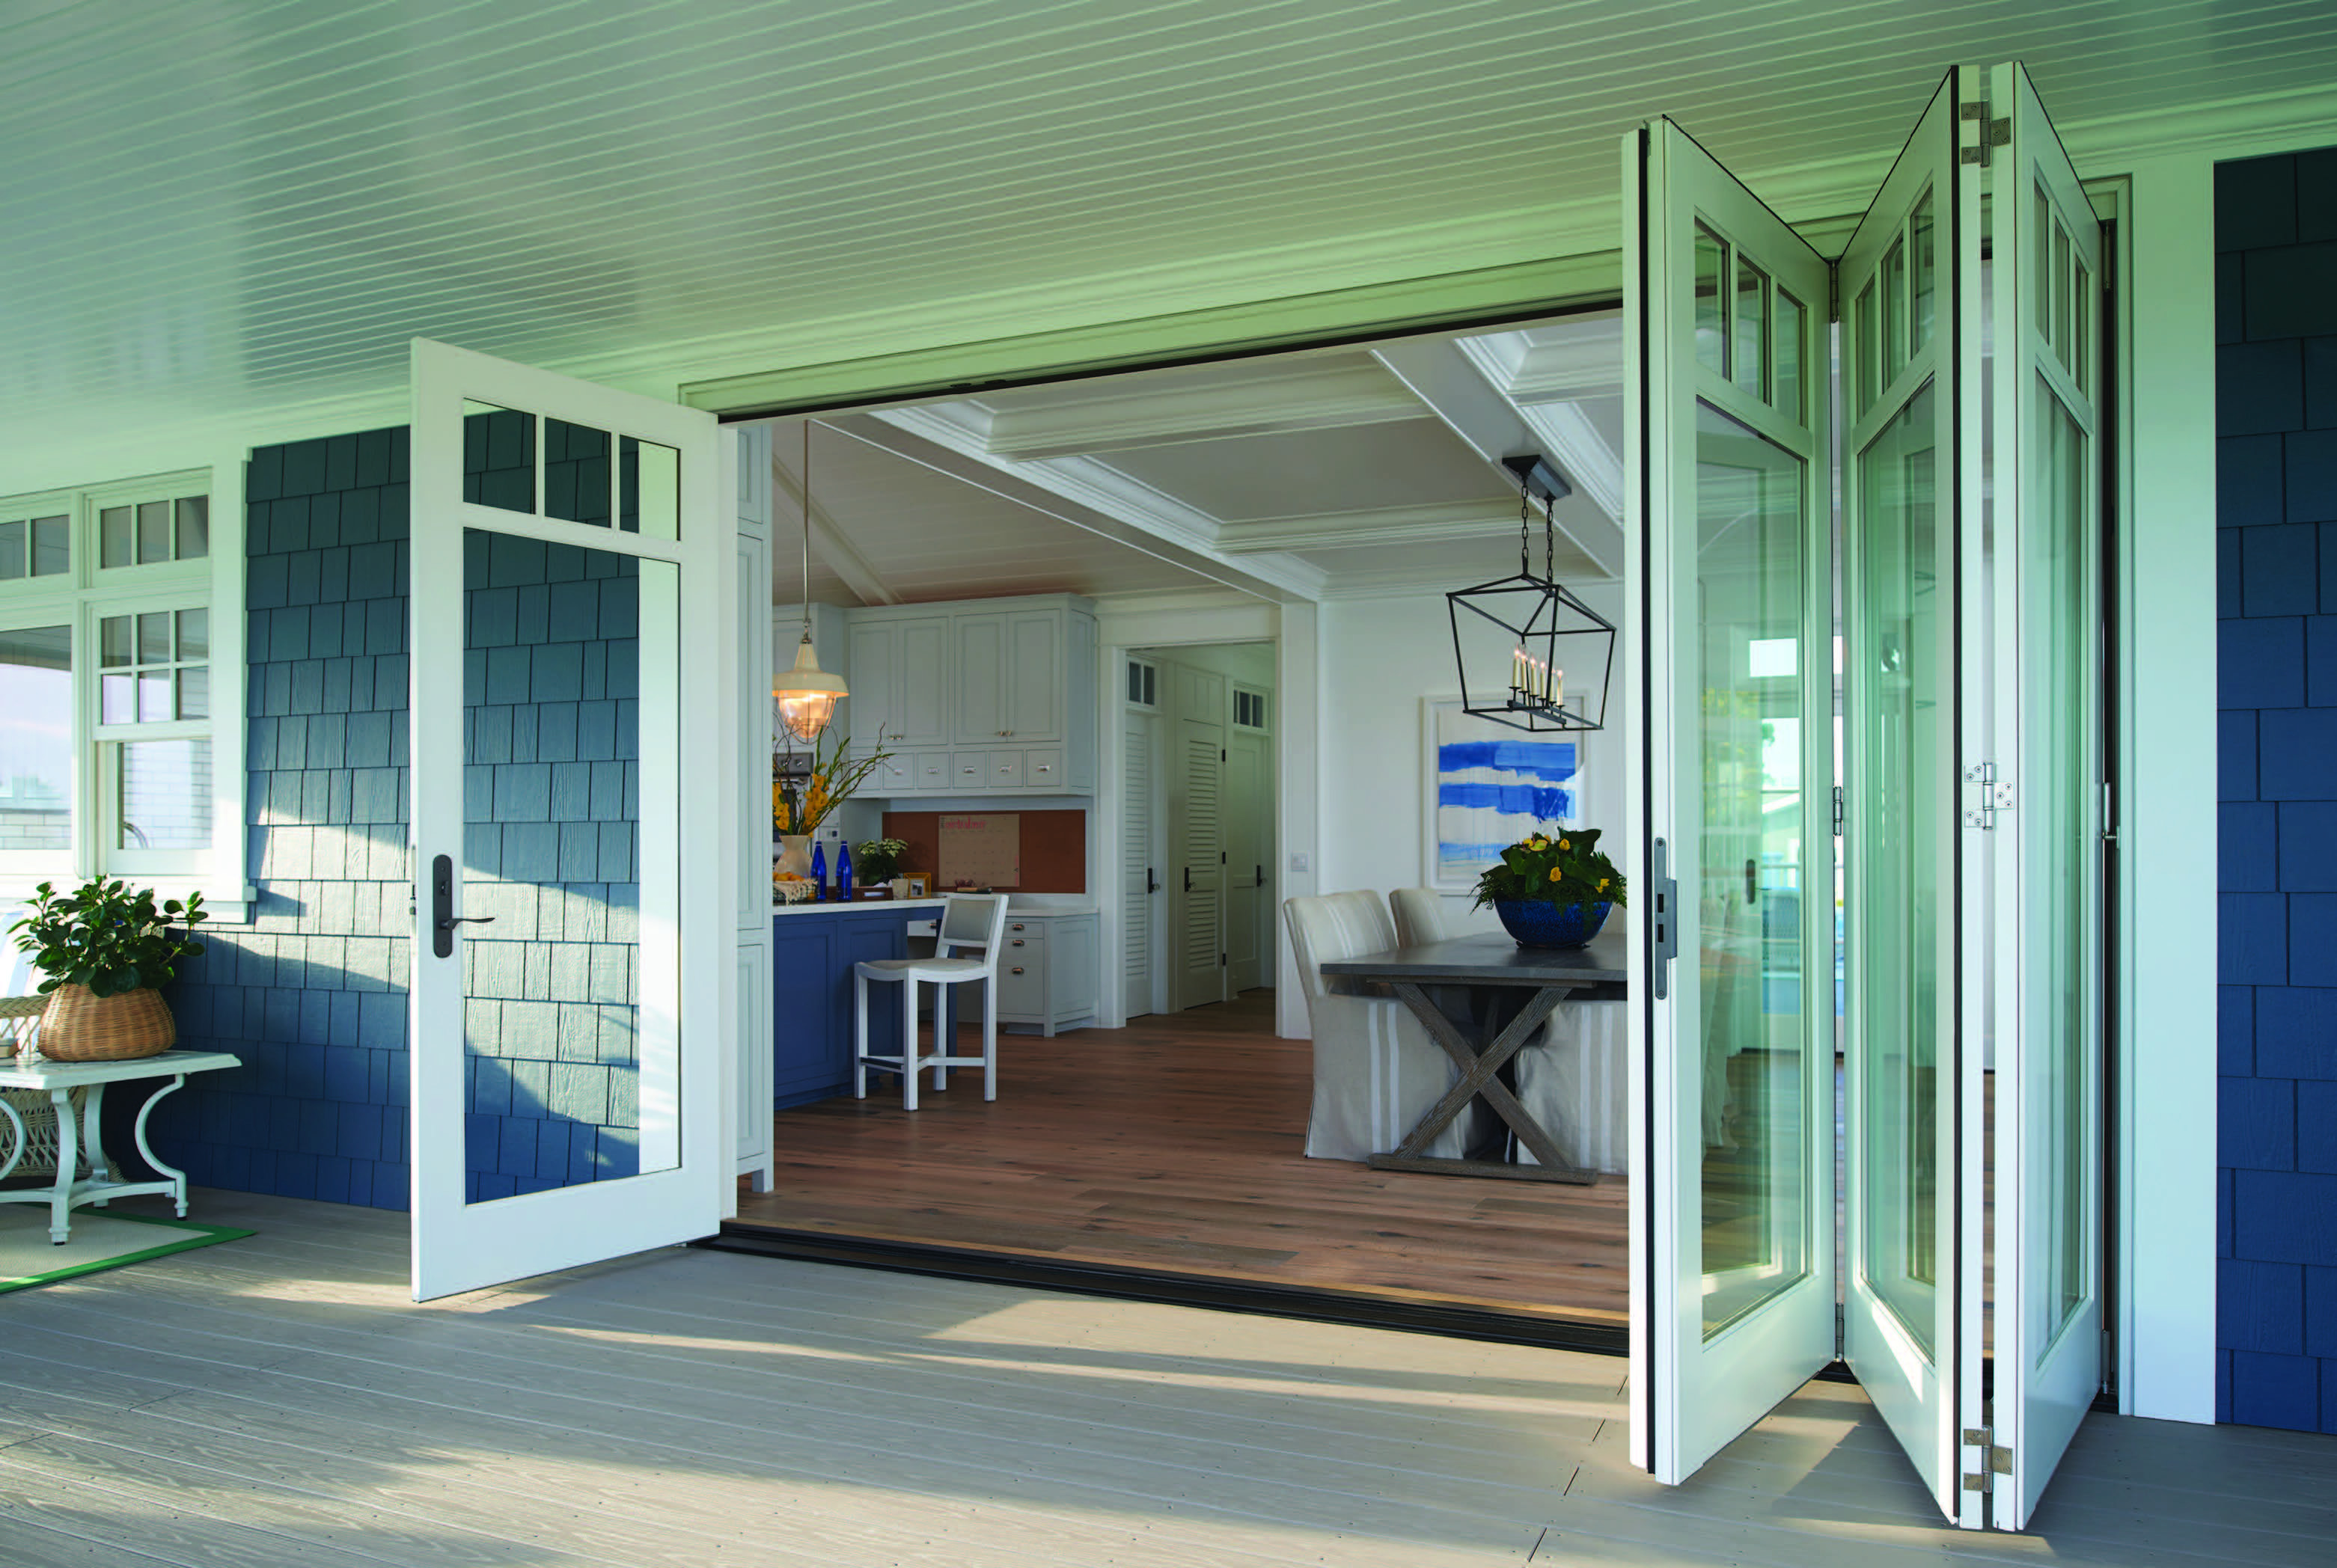 Best ideas about Marvin Patio Doors . Save or Pin Making the Most of Summer Modern technology allows us to Now.